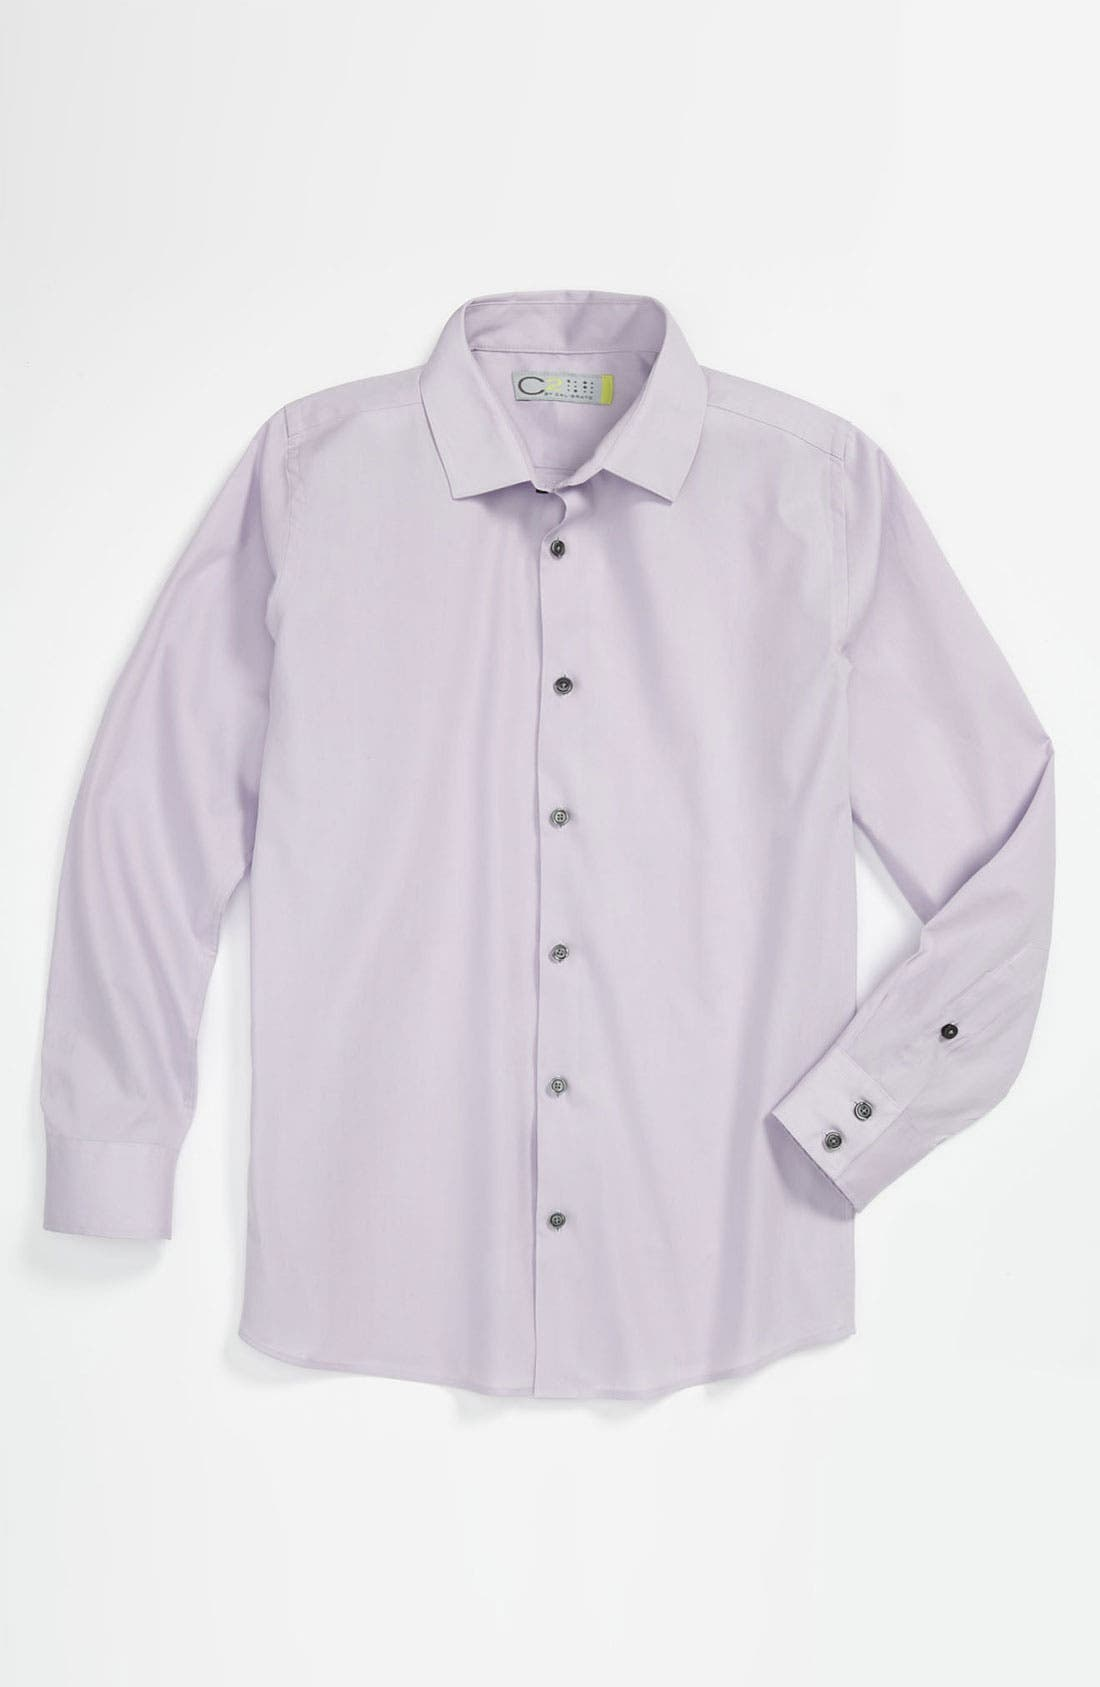 Alternate Image 1 Selected - C2 by Calibrate Dress Shirt (Little Boys & Big Boys)